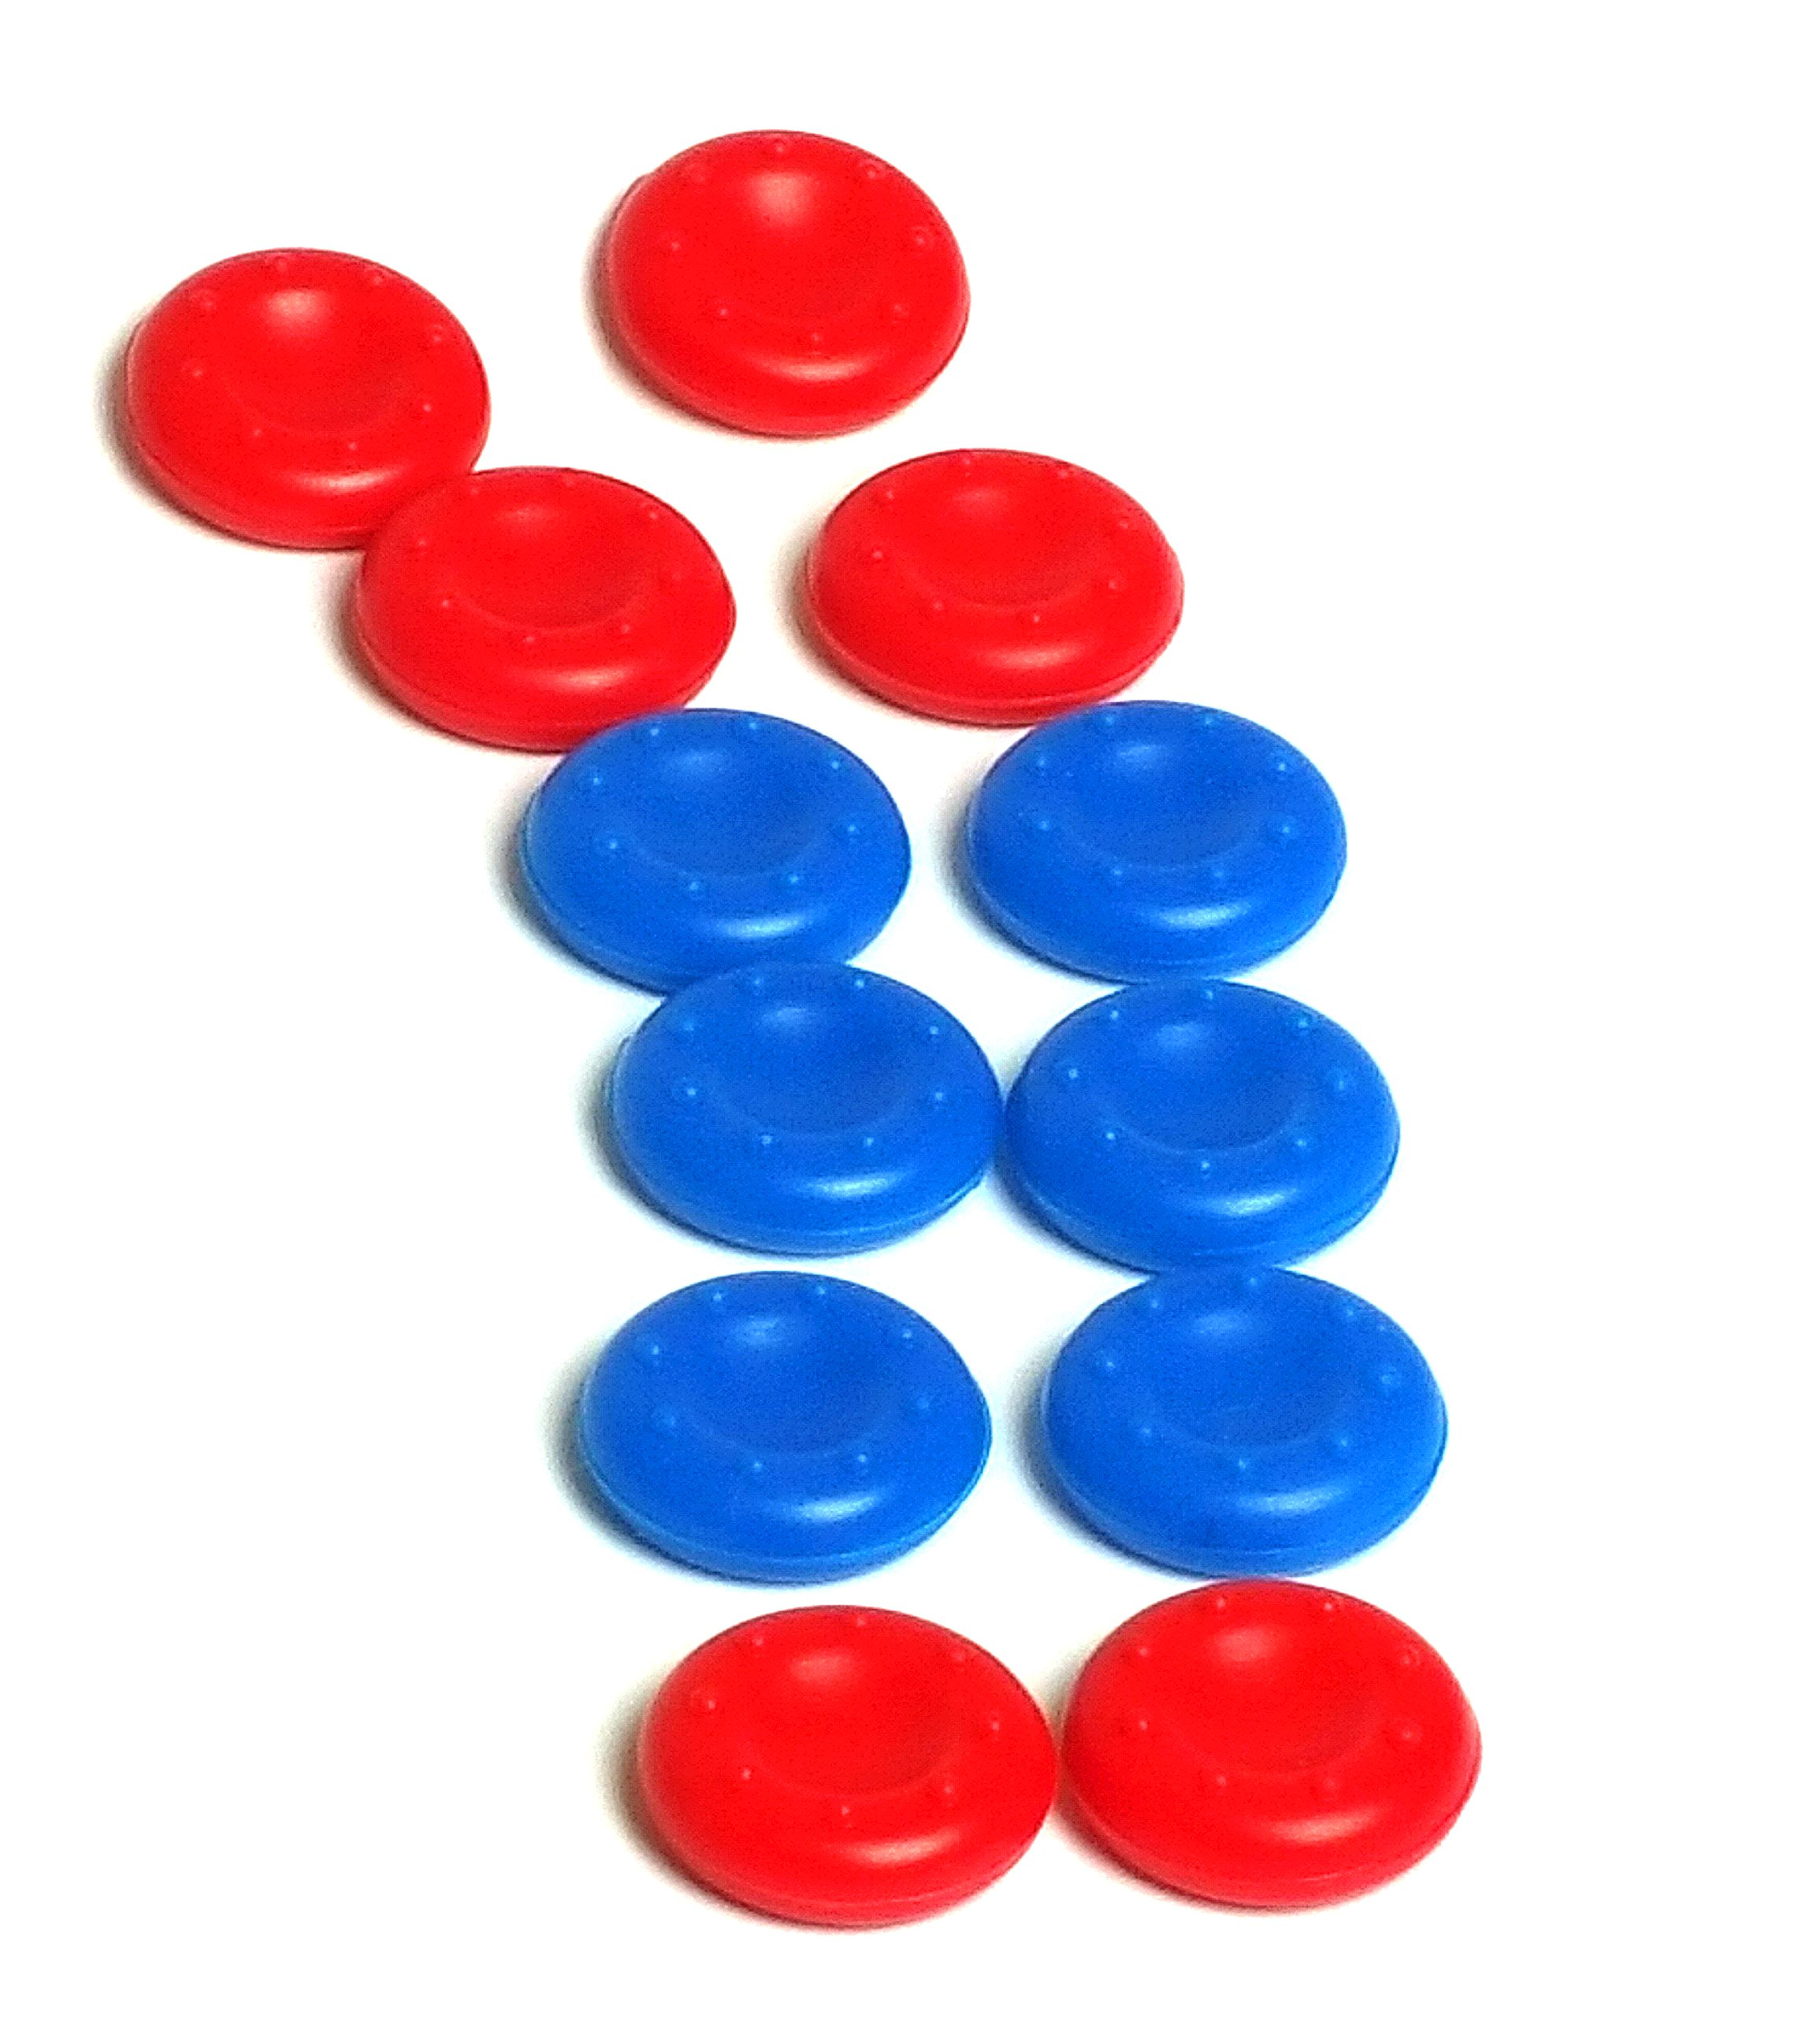 6pairs /12 pcs Color Combo Silicone Thumb Grip cover for PS3 / PS4 / Xbox 360 / Xbox One / Wii Game joystick controller cover - RED & BLUE